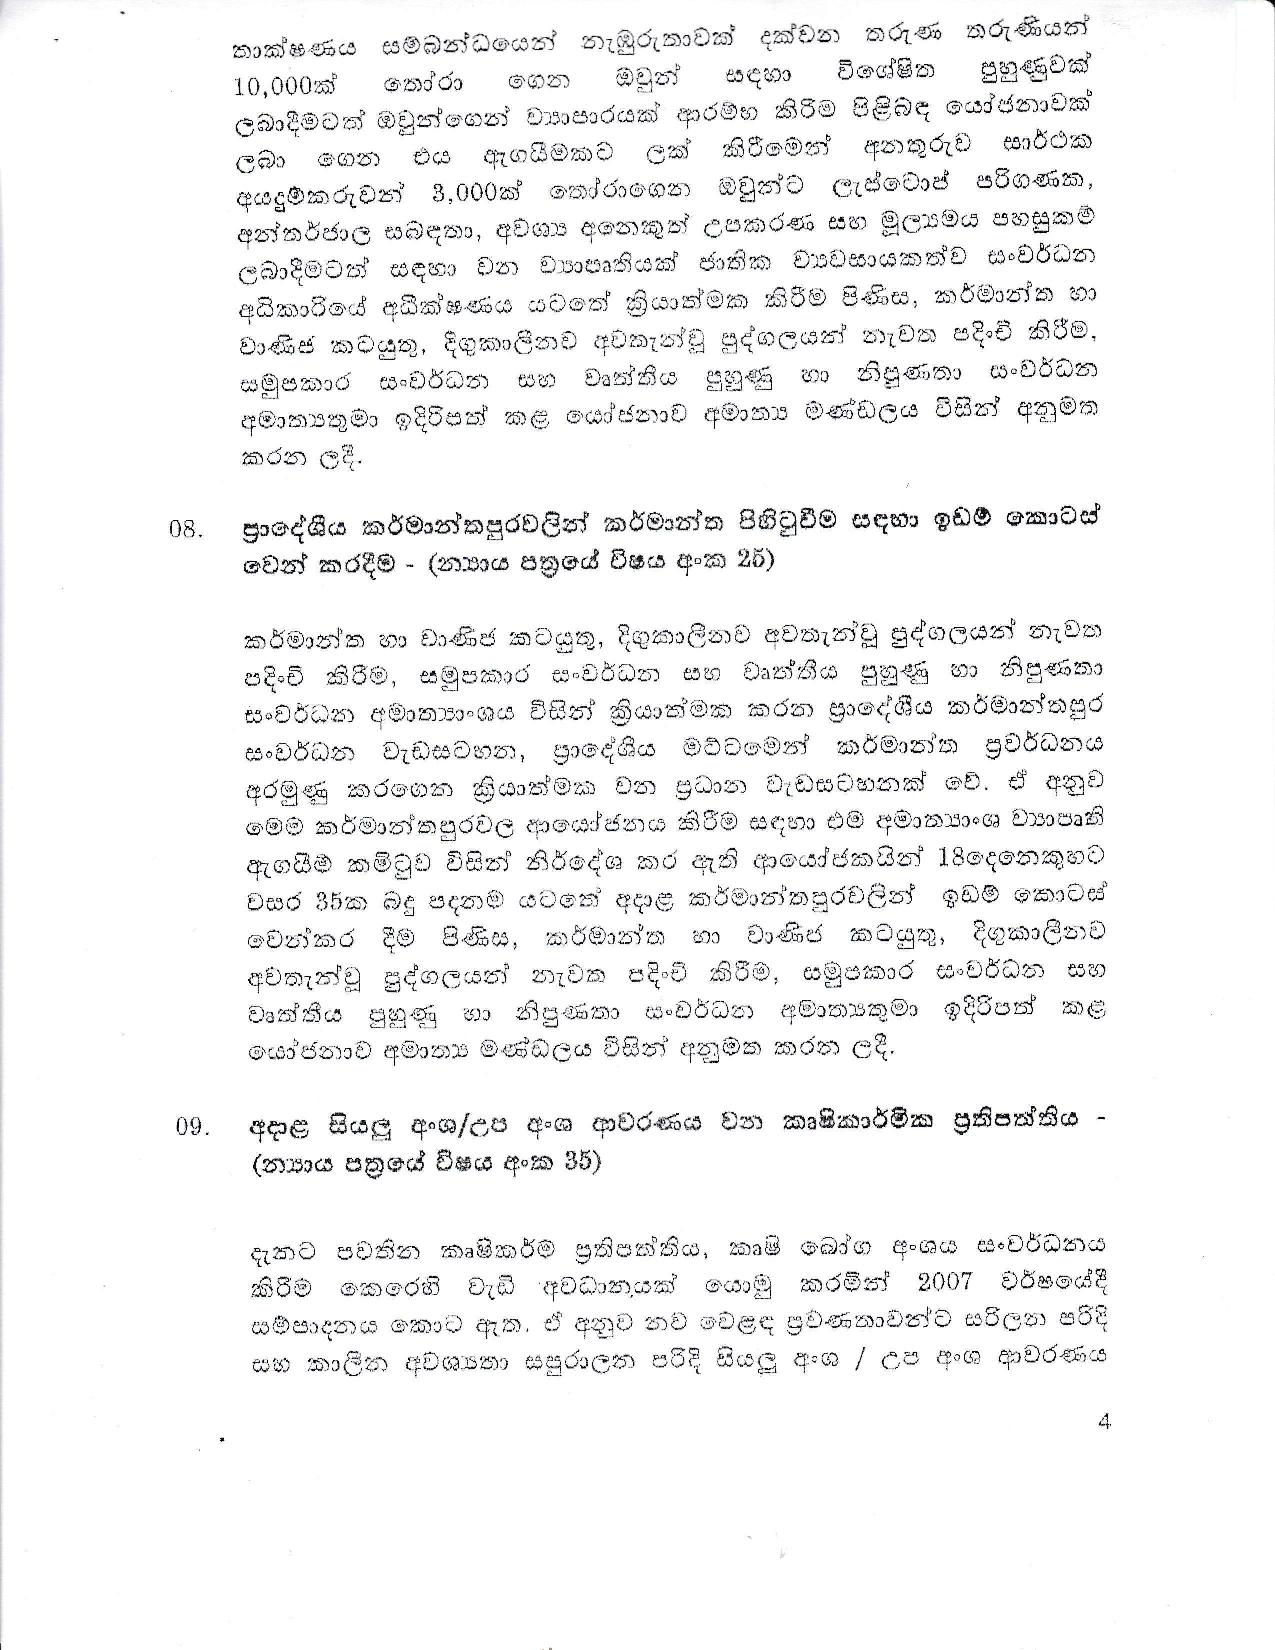 Cabinet Decision on 20.08.2019 1 page 004